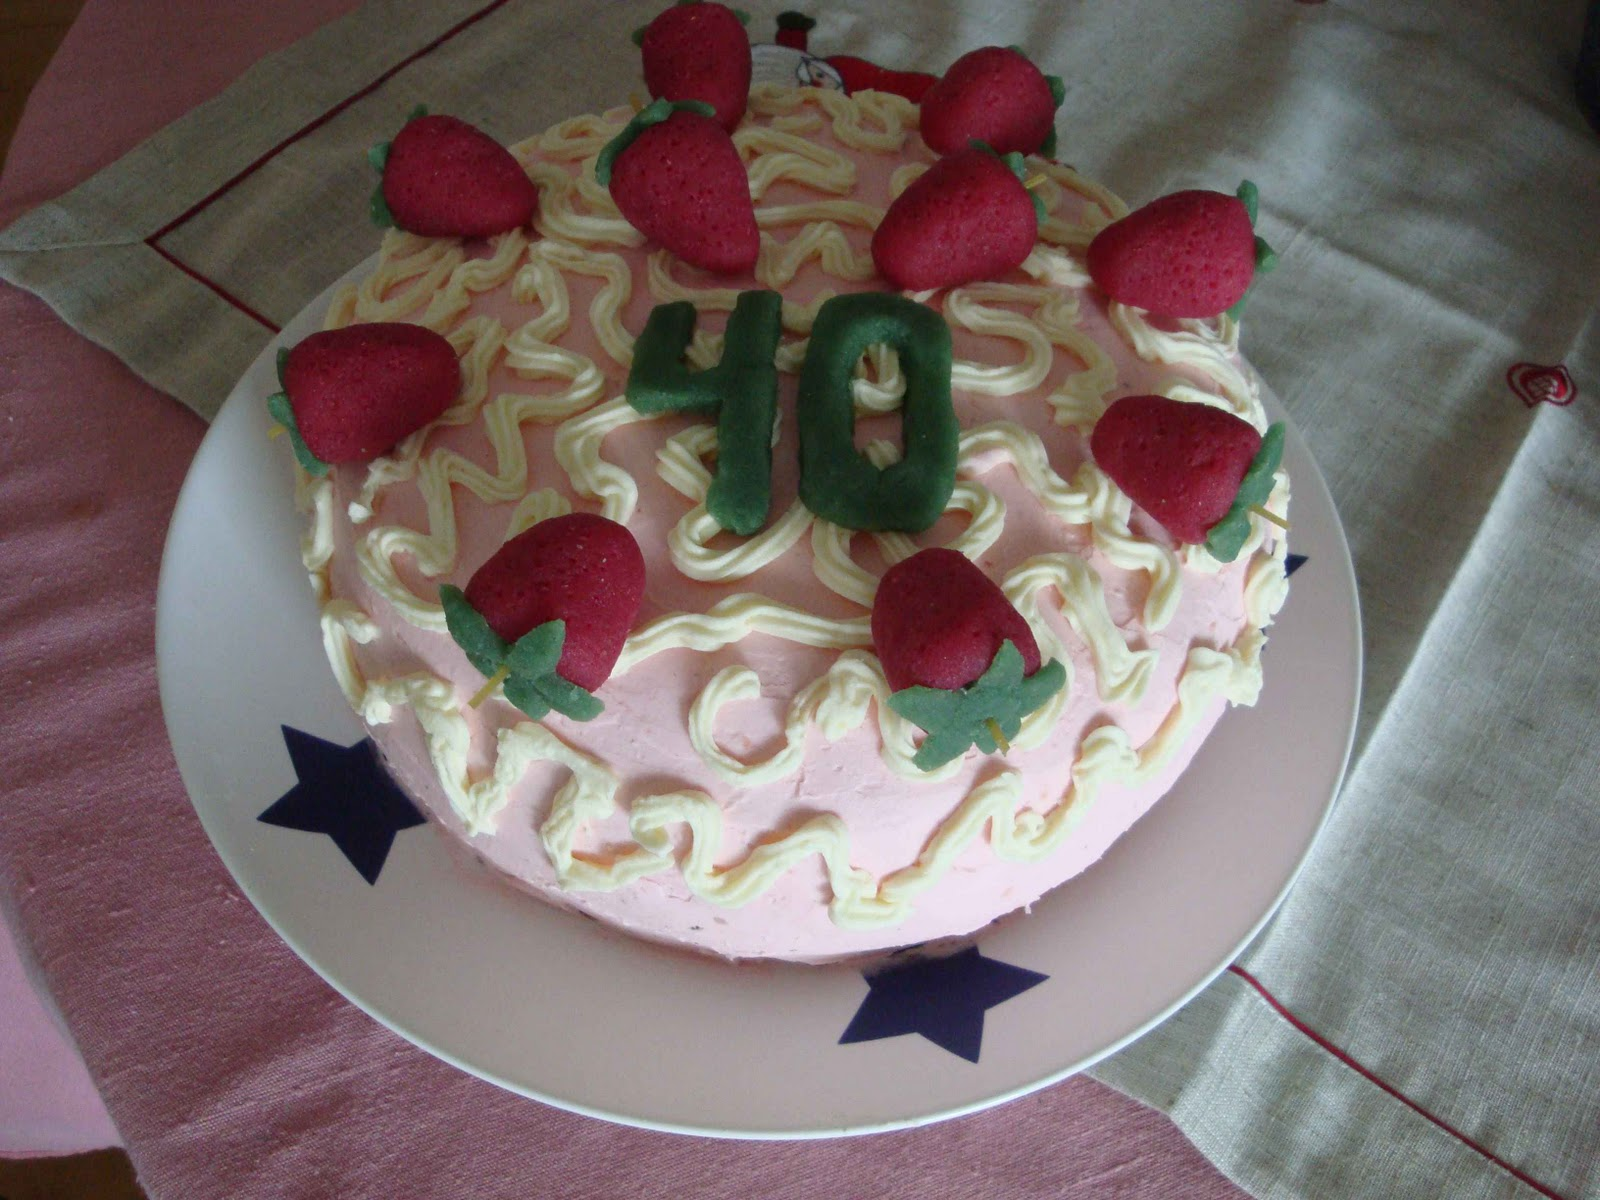 I Draw Some White Buttercream Scrolls On Top Of A Fondant And Finished Cake Decoration With Marzipan Strawberries Figure 40 Tillykke Med Fdselsdagen